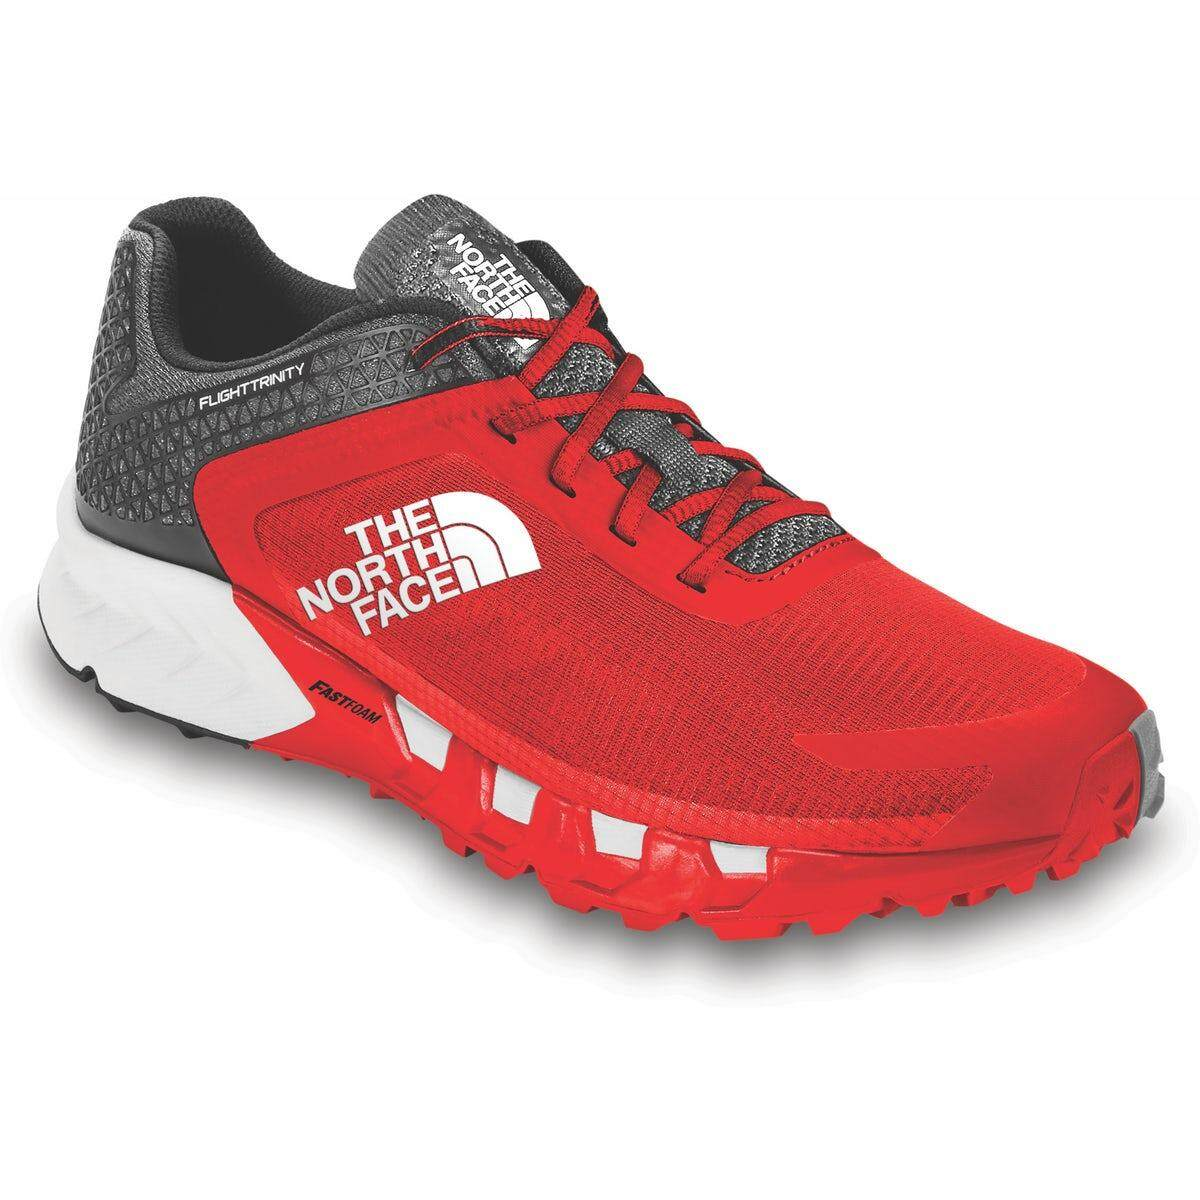 3155ebc64 THE NORTH FACE FLIGHT TRINITY TRAIL RUNNING SHOES - MEN'S (RED)